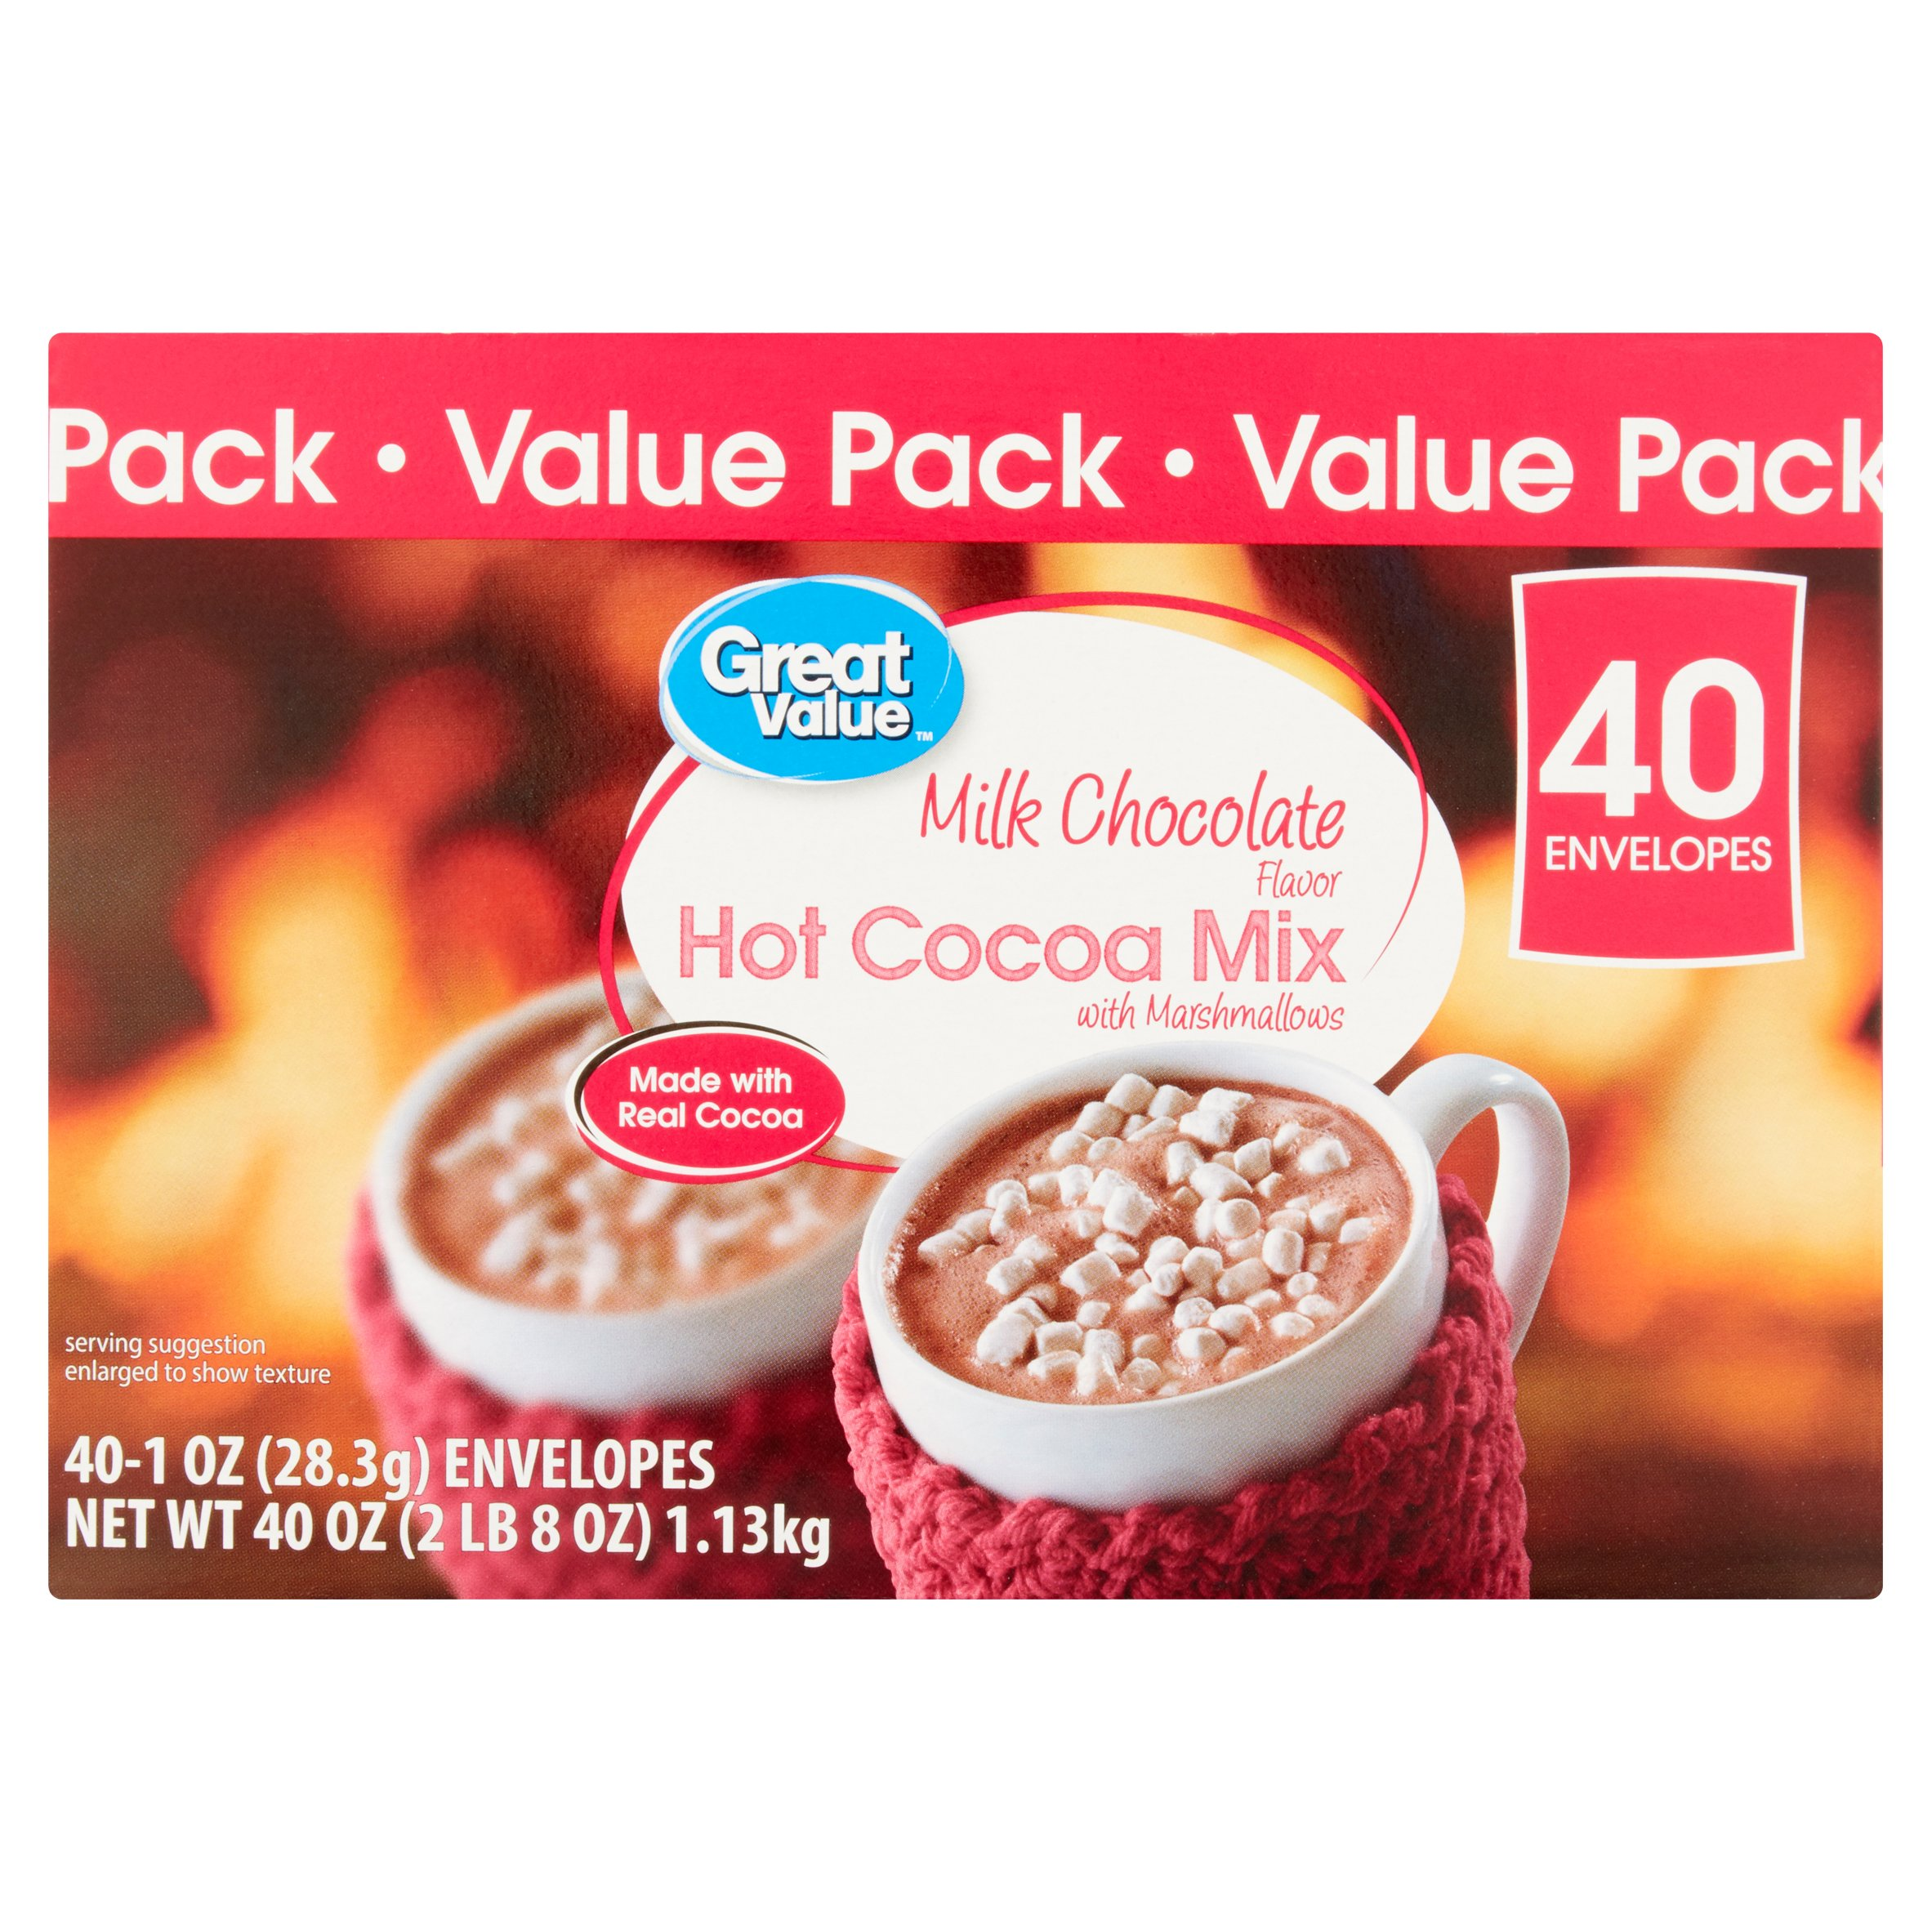 Great Value Hot Cocoa Mix, Milk Chocolate with Marshmallows, Value Pack, 40 Count by Wal-Mart Stores, Inc.